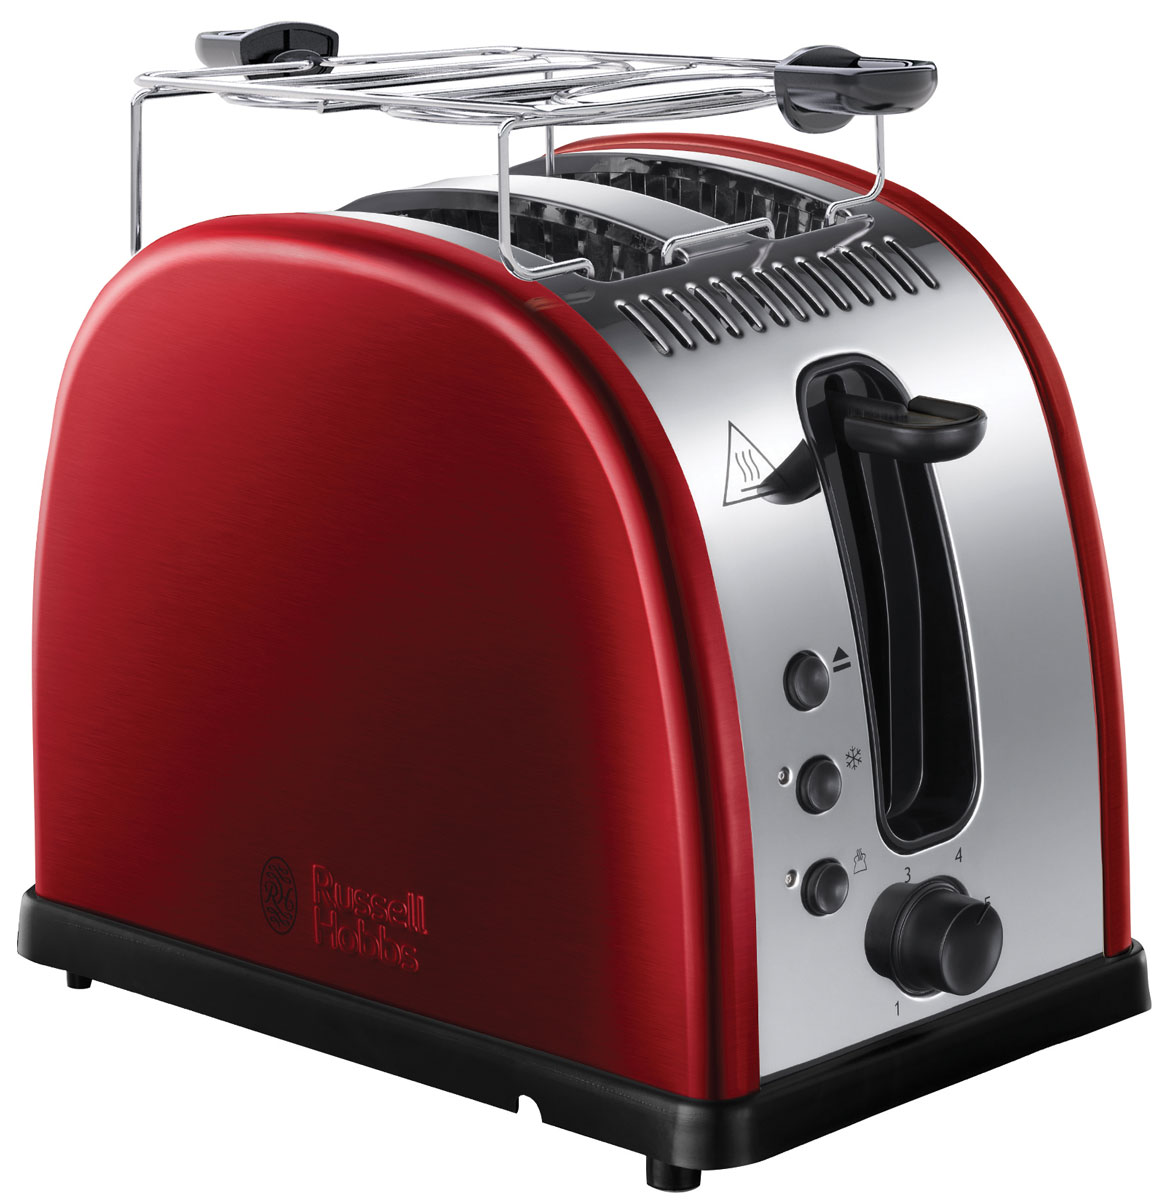 Russell Hobbs 21291-56, Red тостер